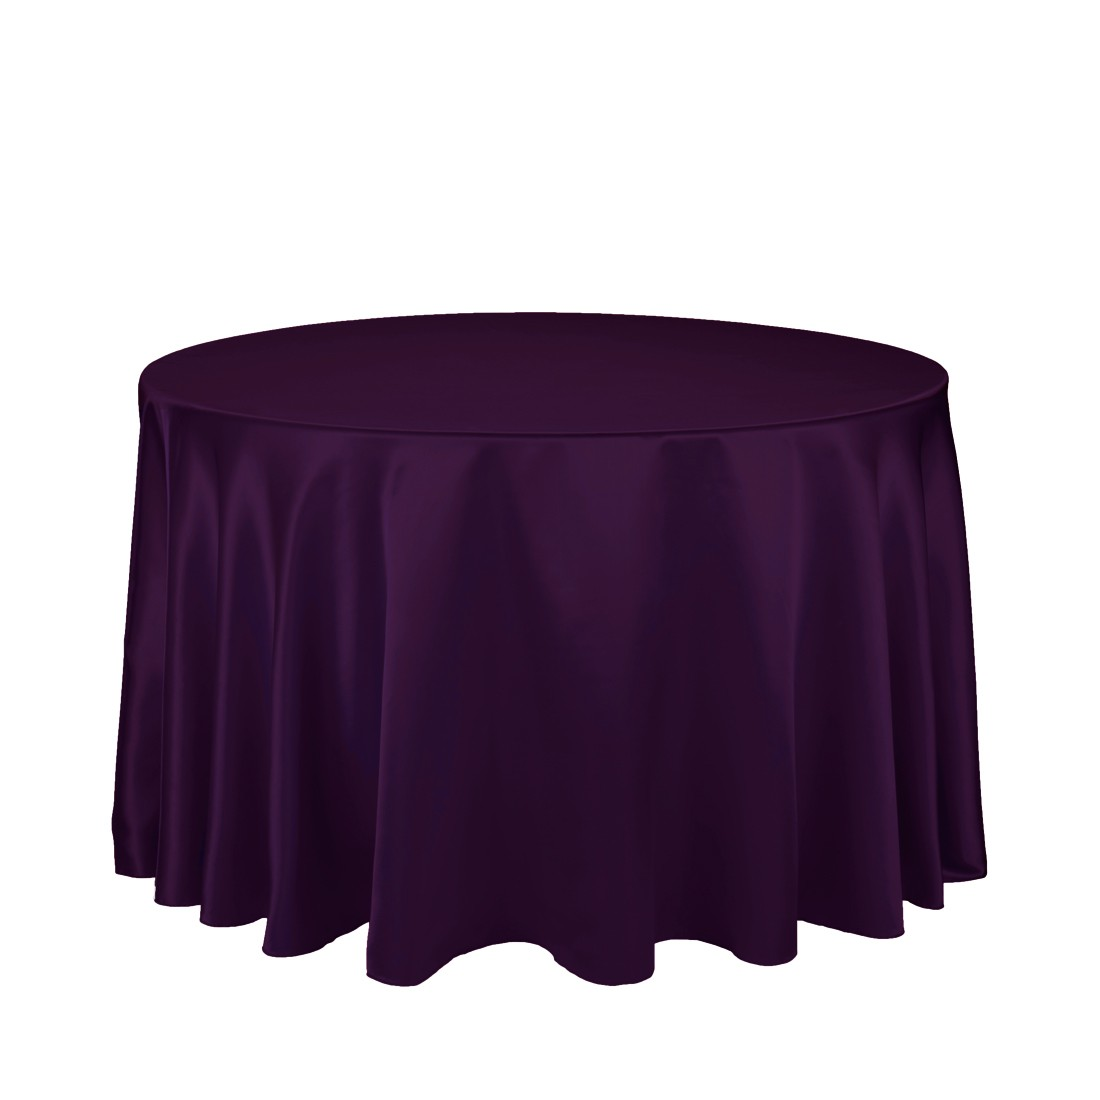 108-round-satin-tablecloth-eggplant-default